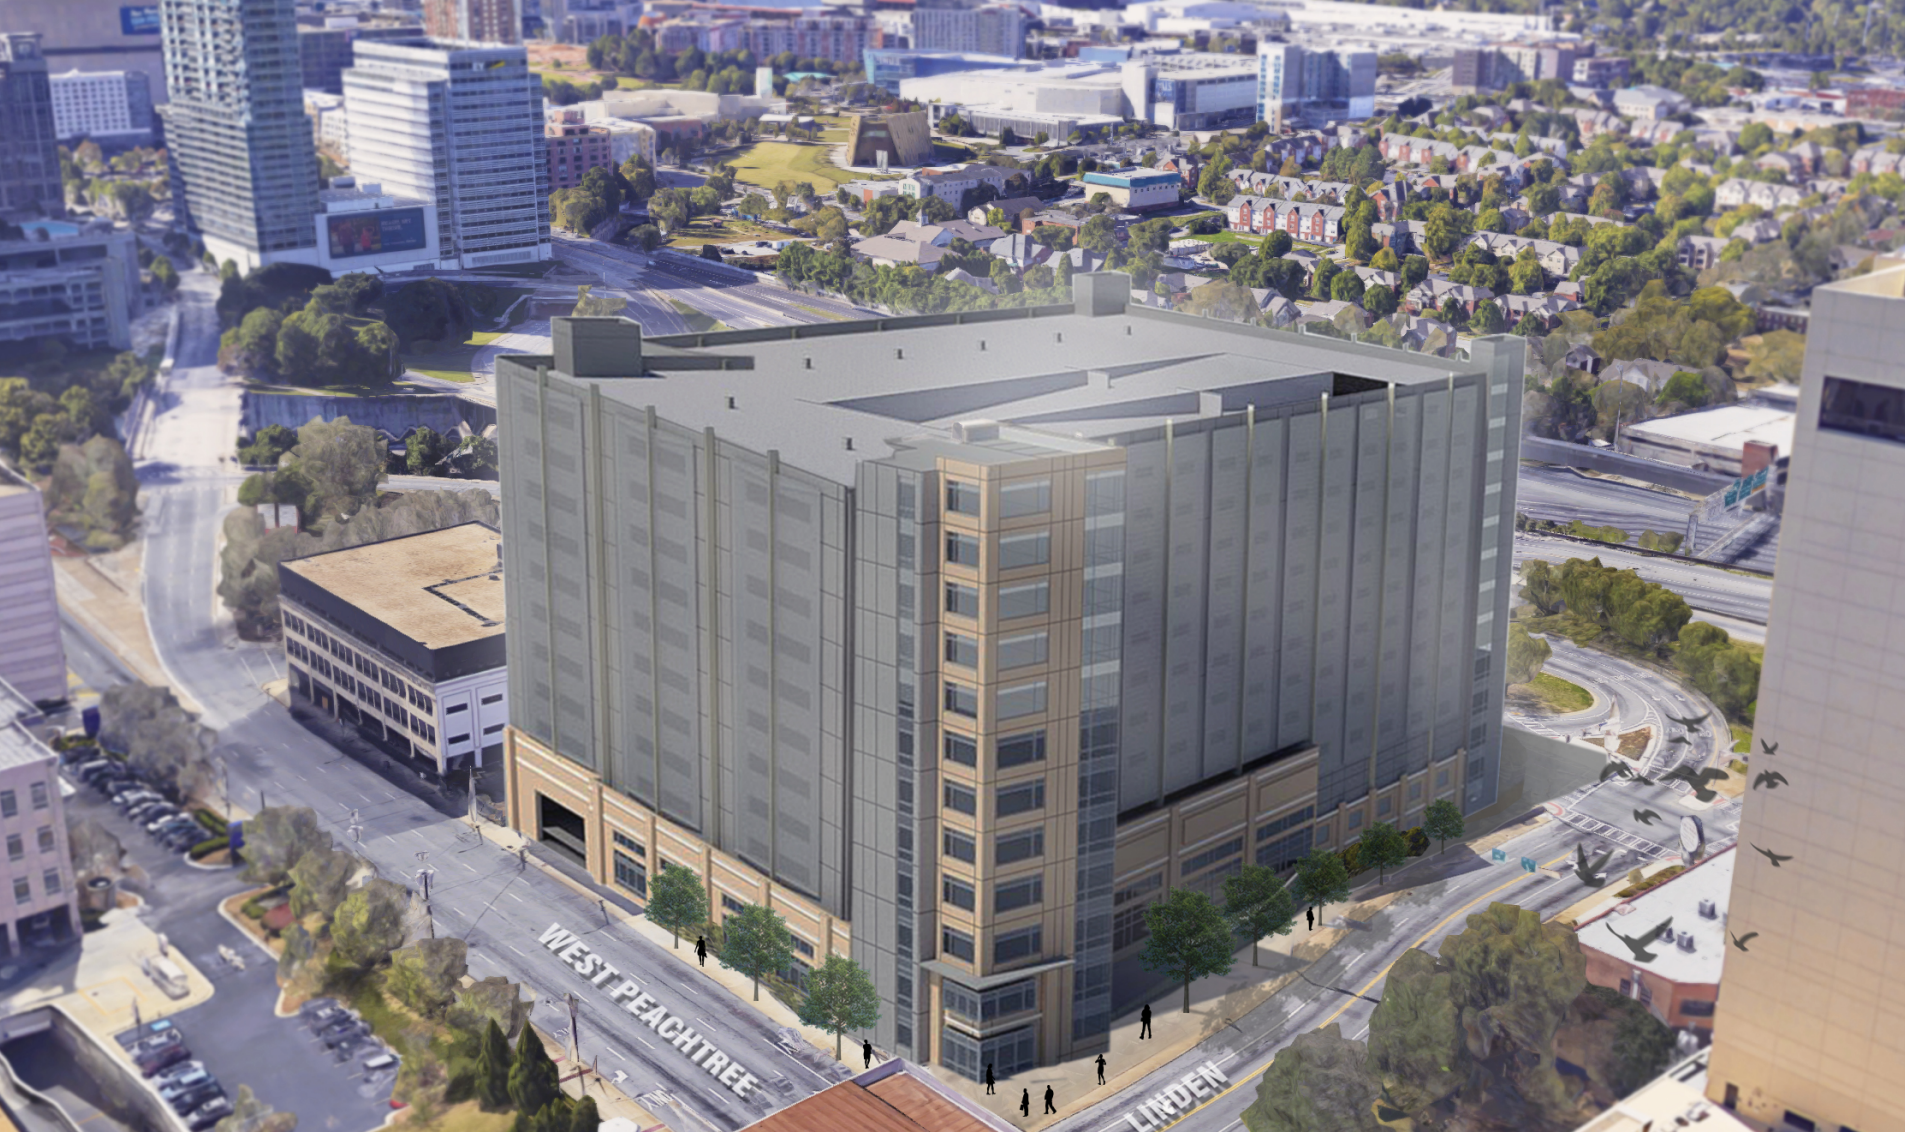 A rendering of the parking deck to-come